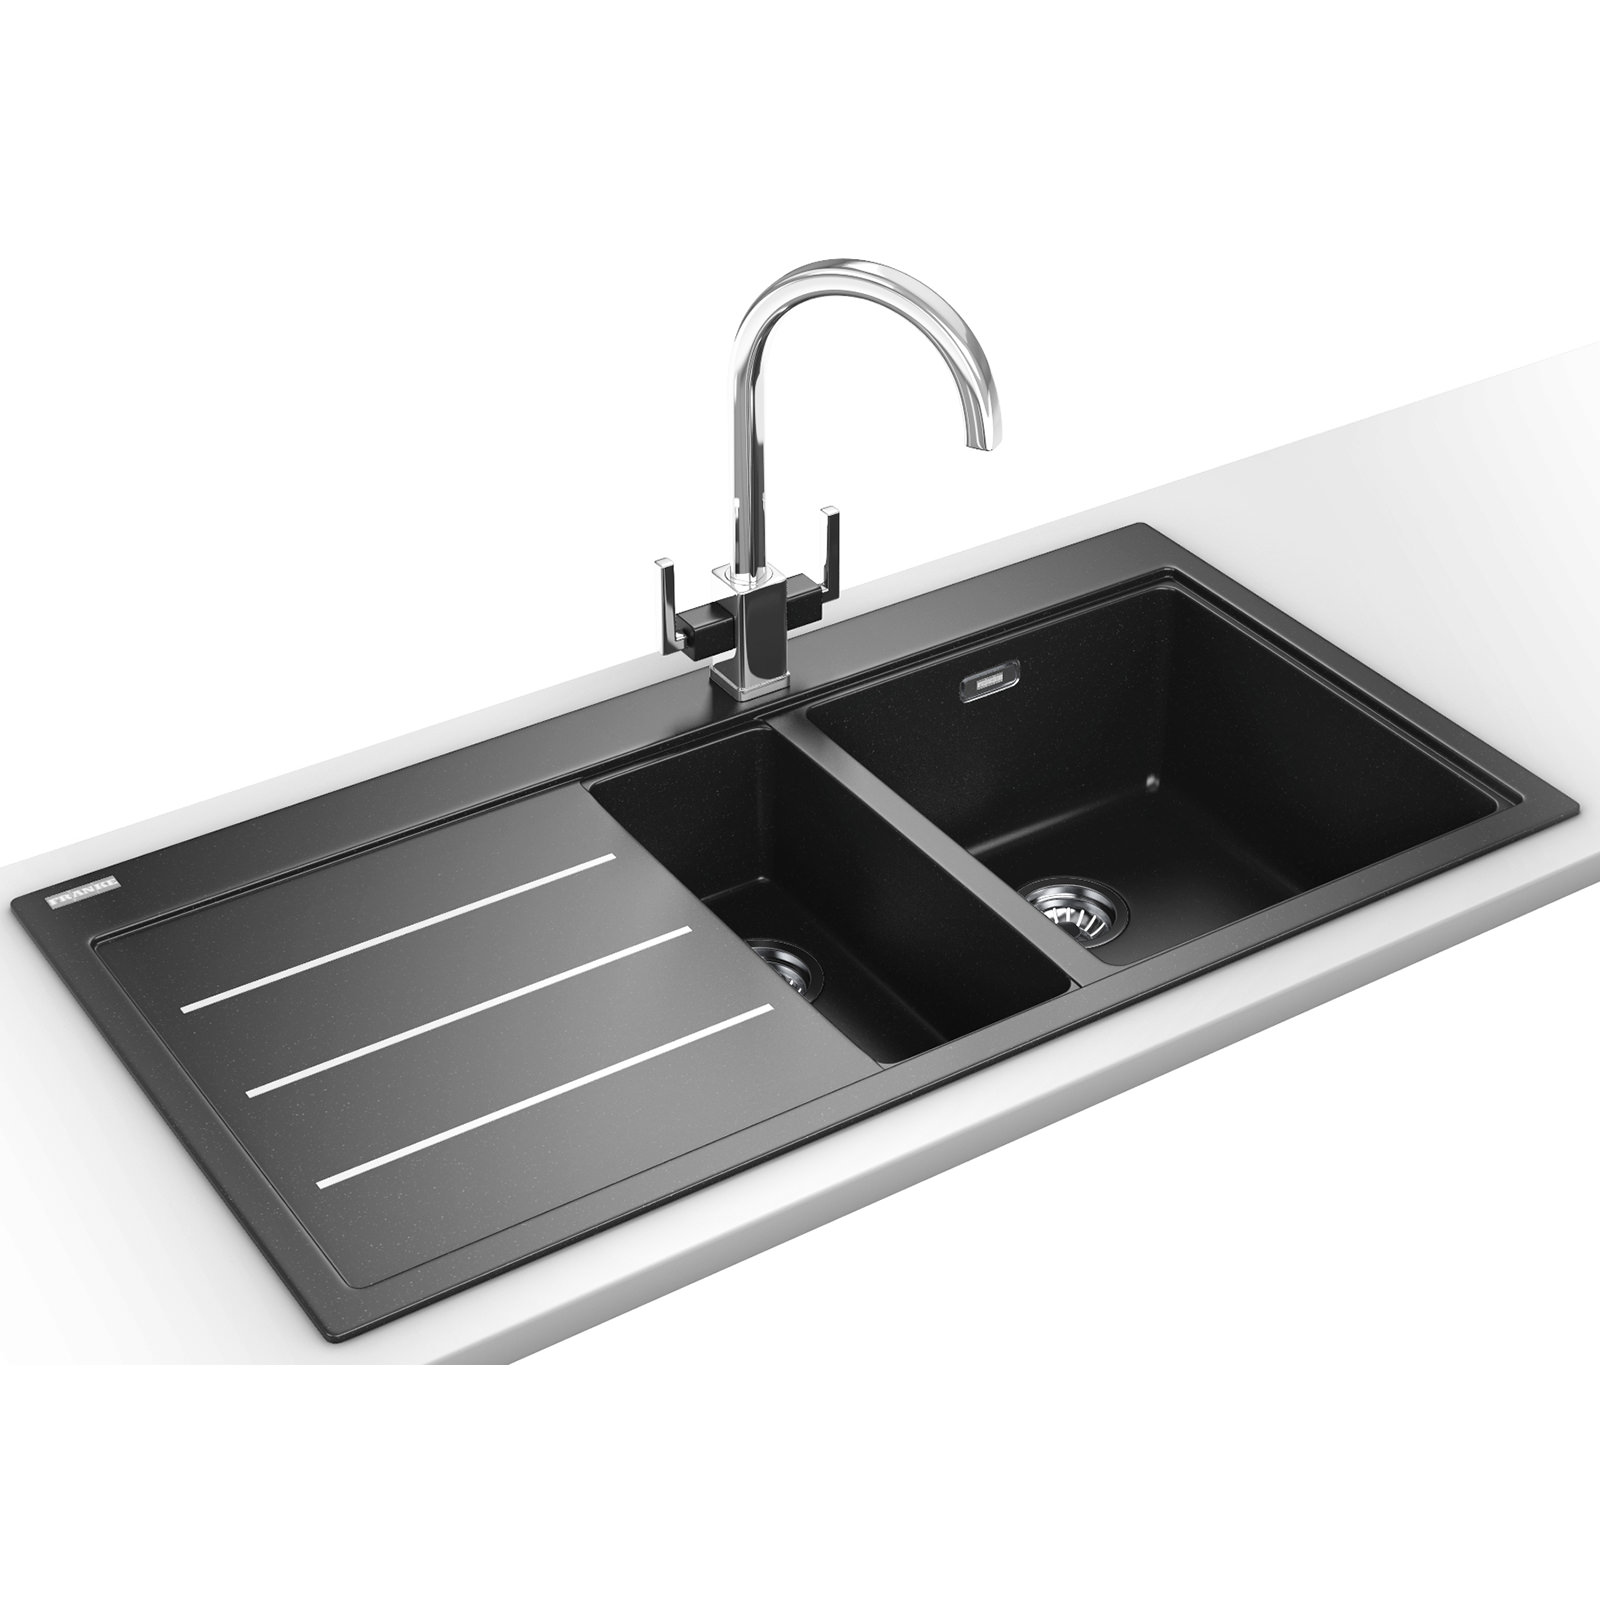 Franke mythos fusion mtf 651 100 fragranite onyx 1 5 bowl inset sink - Designer sinks ...